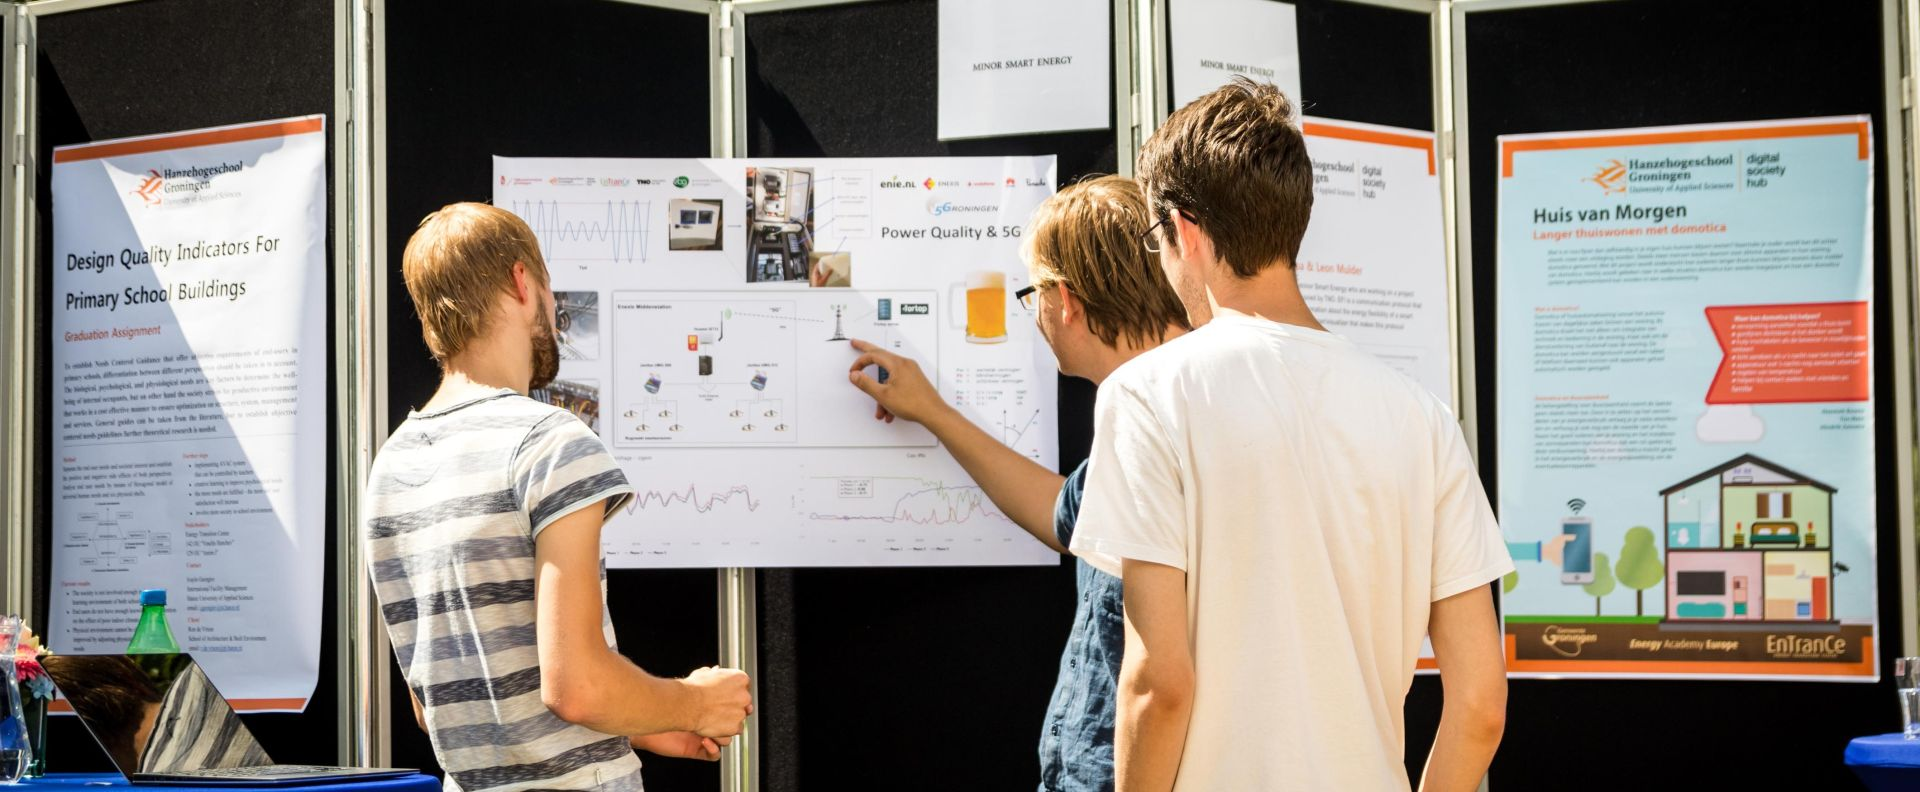 Studenten minor Smart Energy vallen in de prijzen tijdens TransFuture Festival